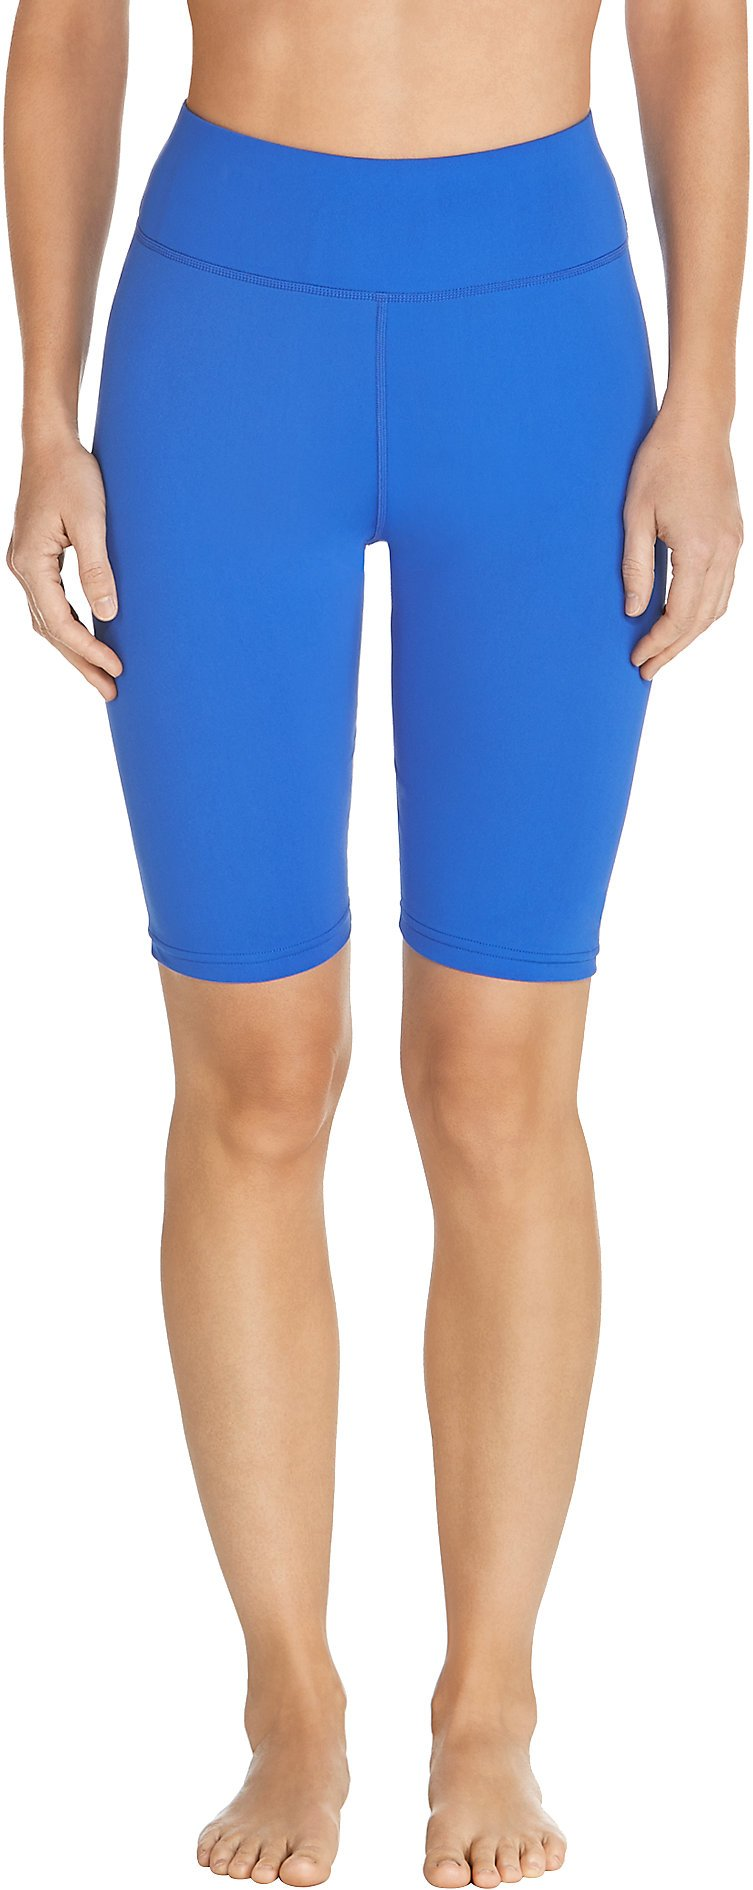 Coolibar UPF 50+ Women's Deep Water Swim Shorts - Sun Protective